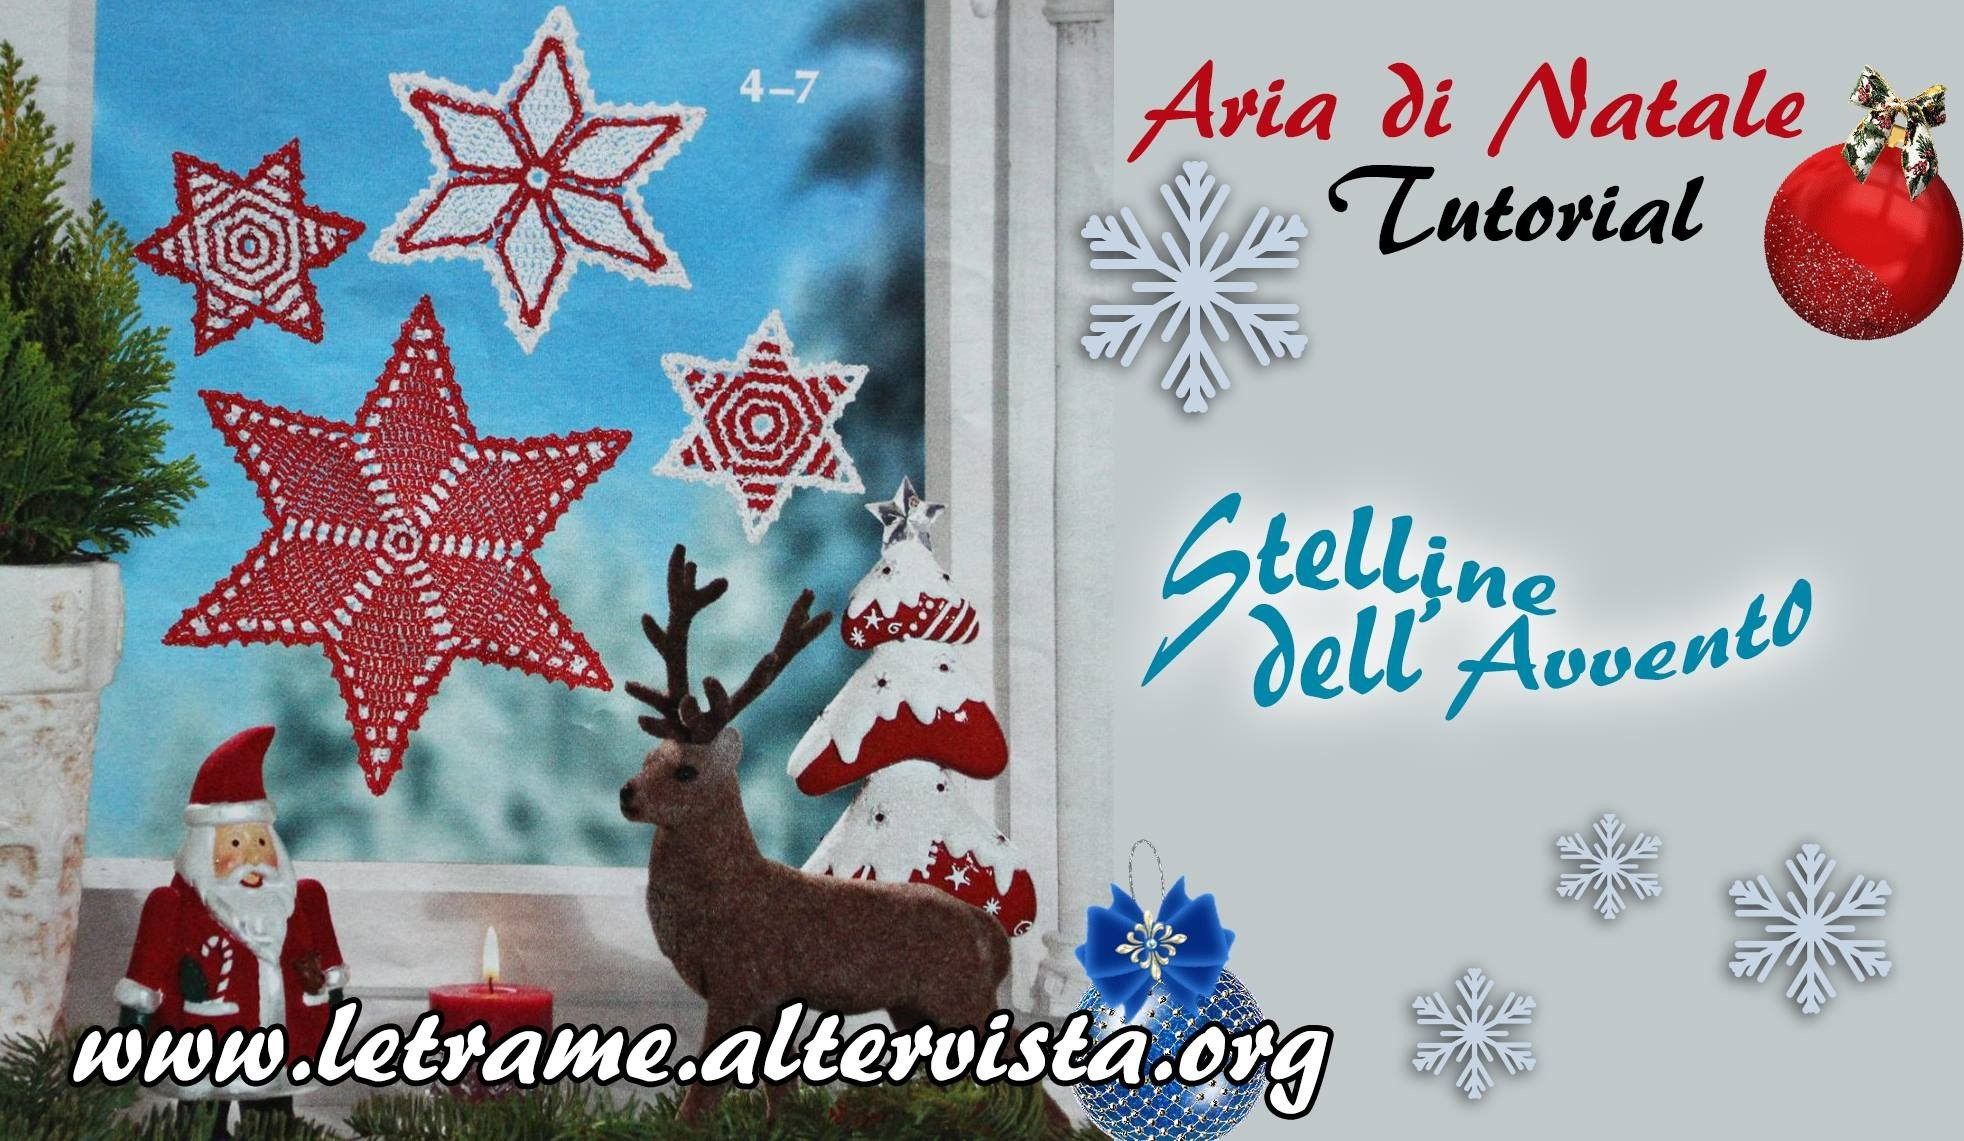 Tutorial Stella natalizia all' uncinetto (crochet) 1.2